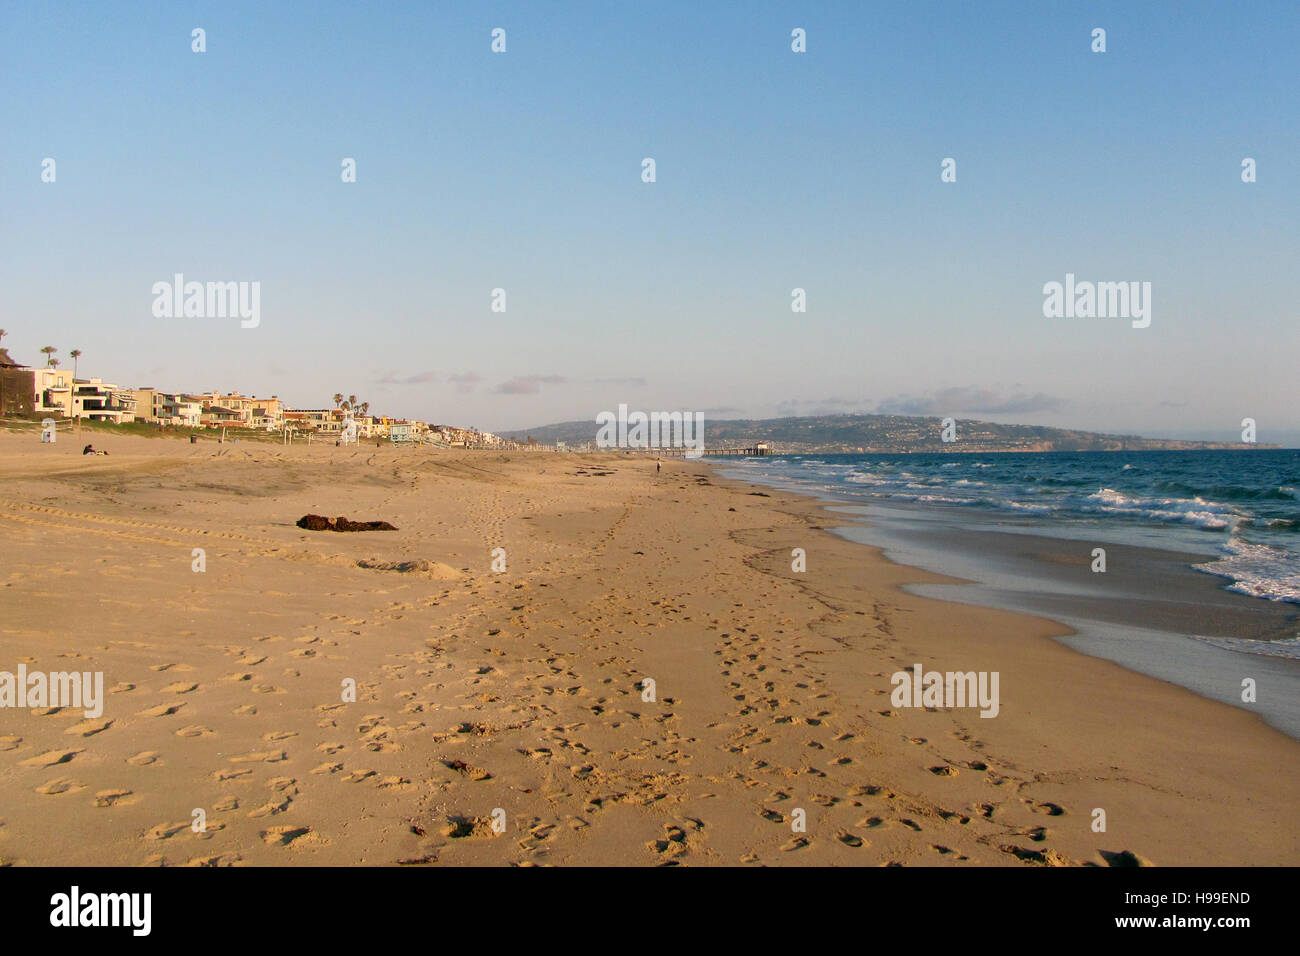 Manhattan Beach, California USA - Stock Image